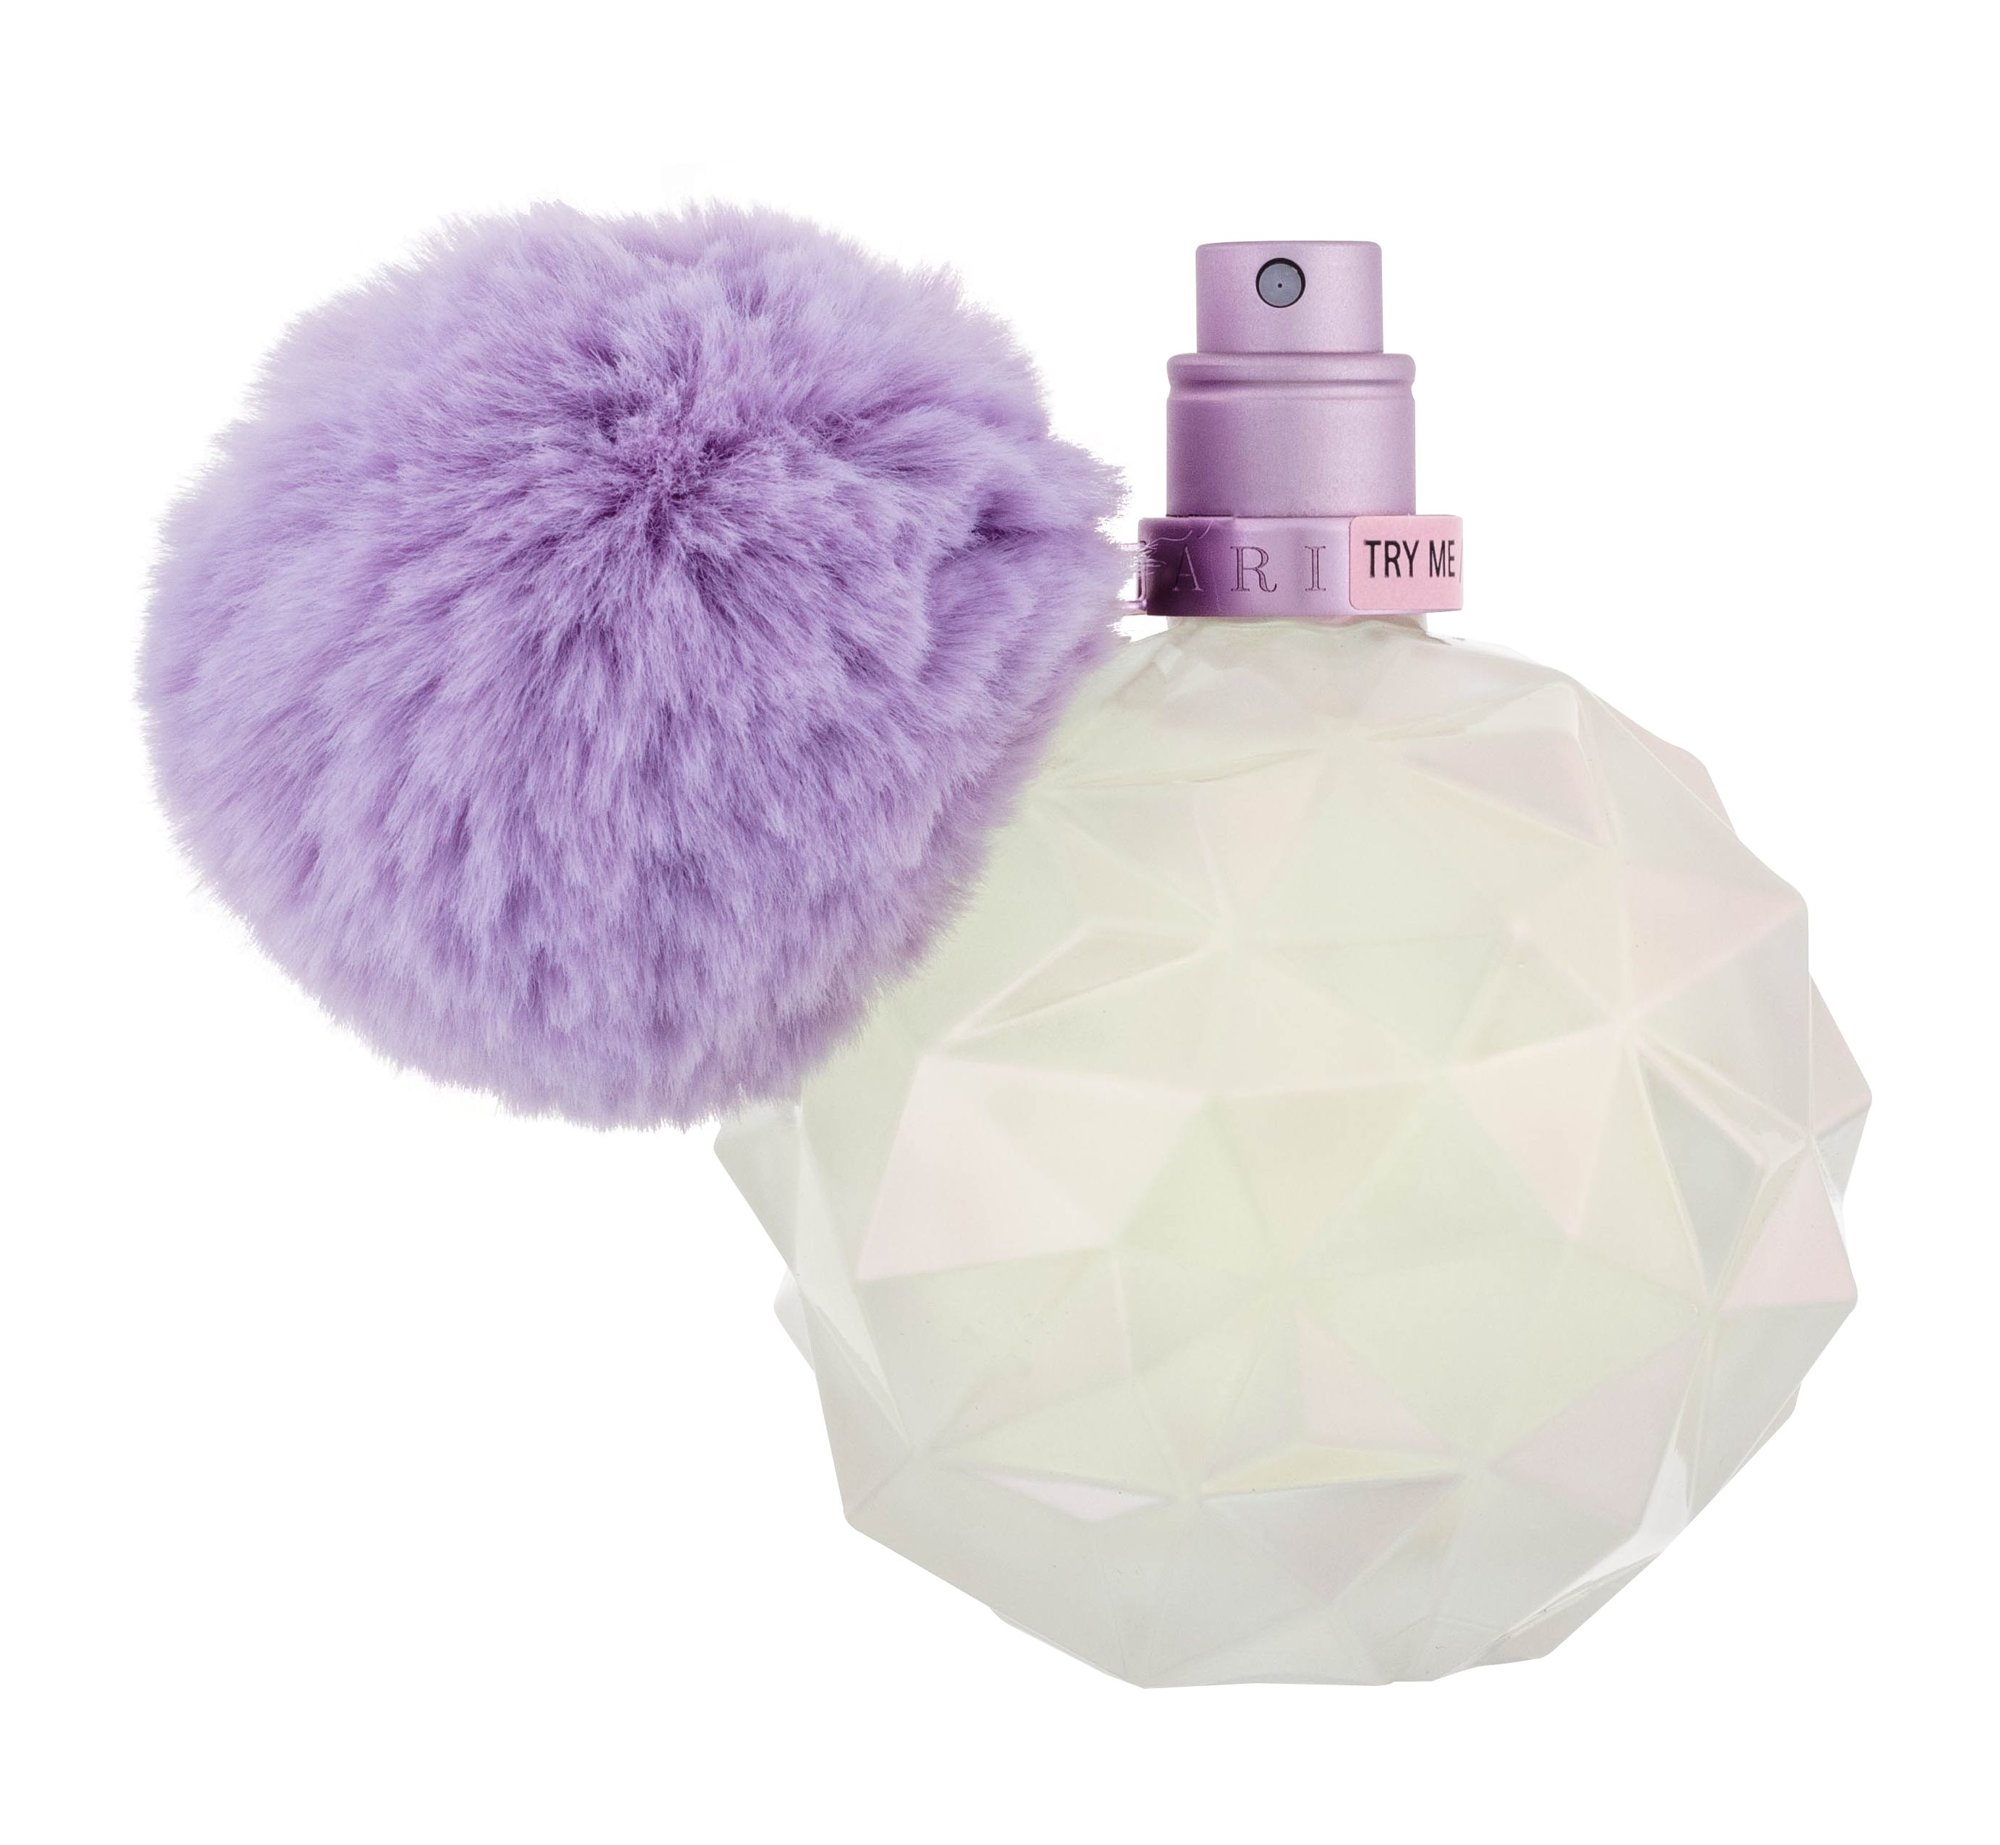 Ariana Grande Moonlight Eau de Parfum 100ml